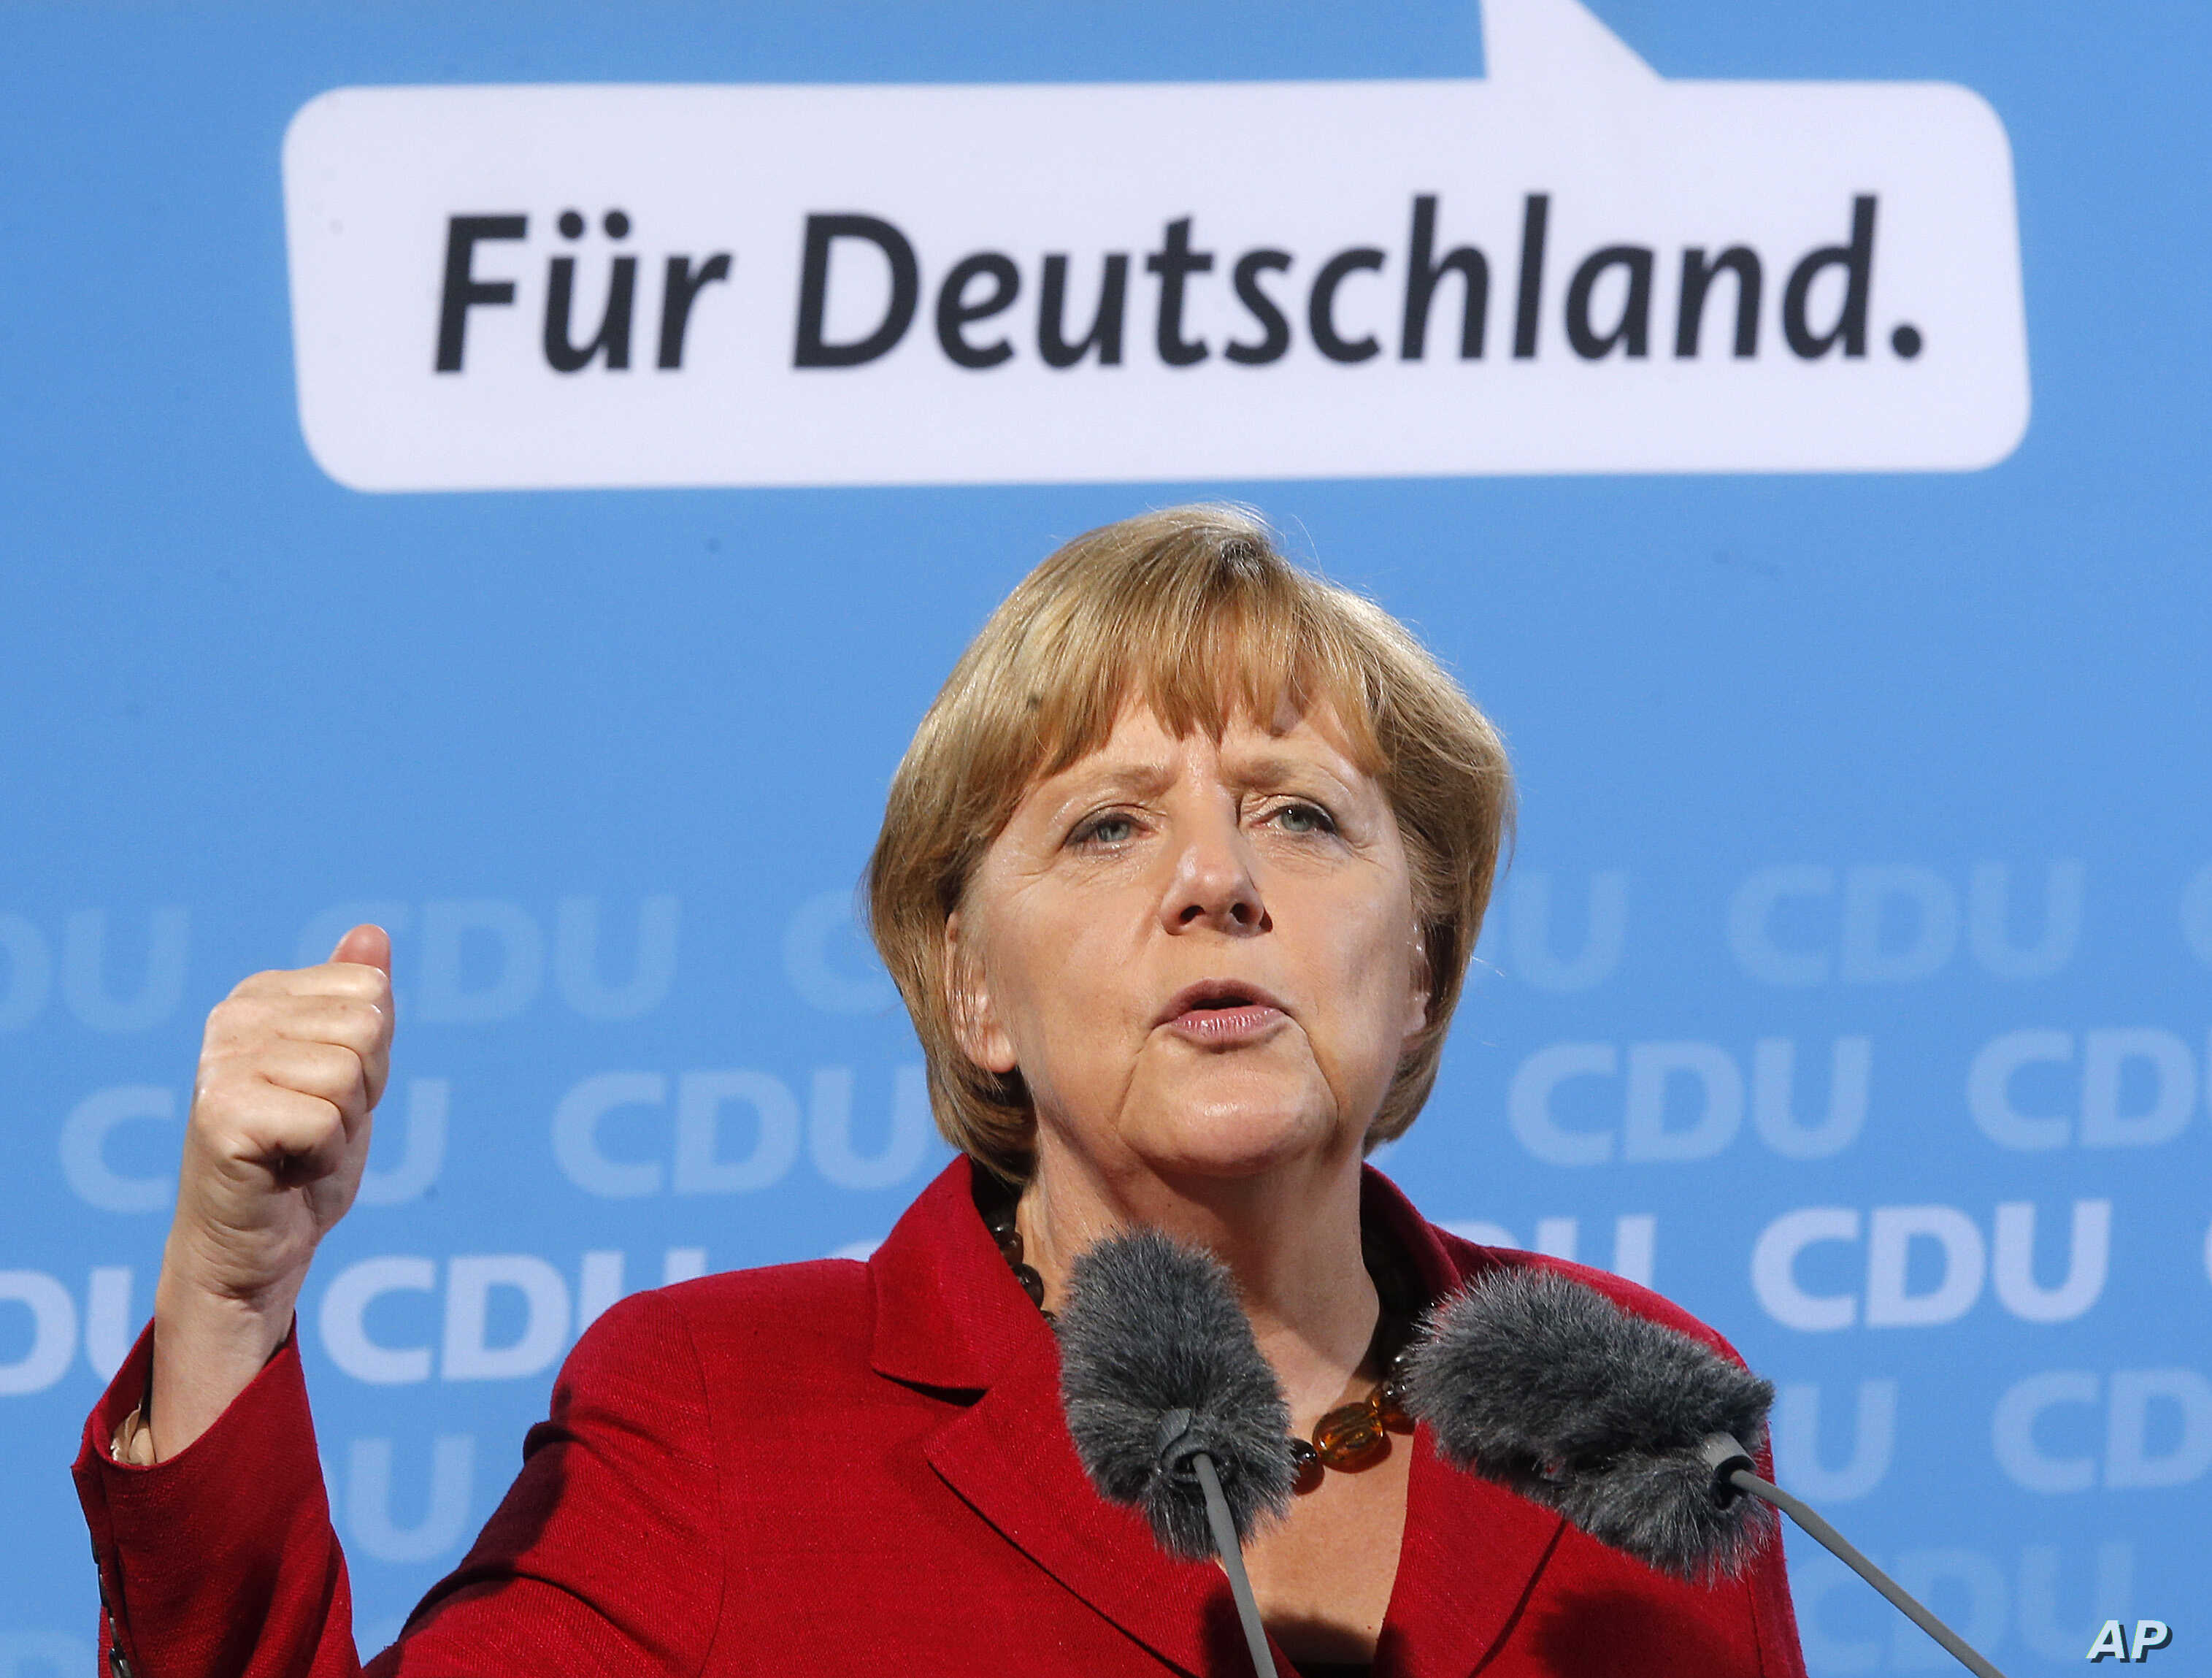 Minimum Wage Debate Looms Large In German Election Campaign Voice Of America English